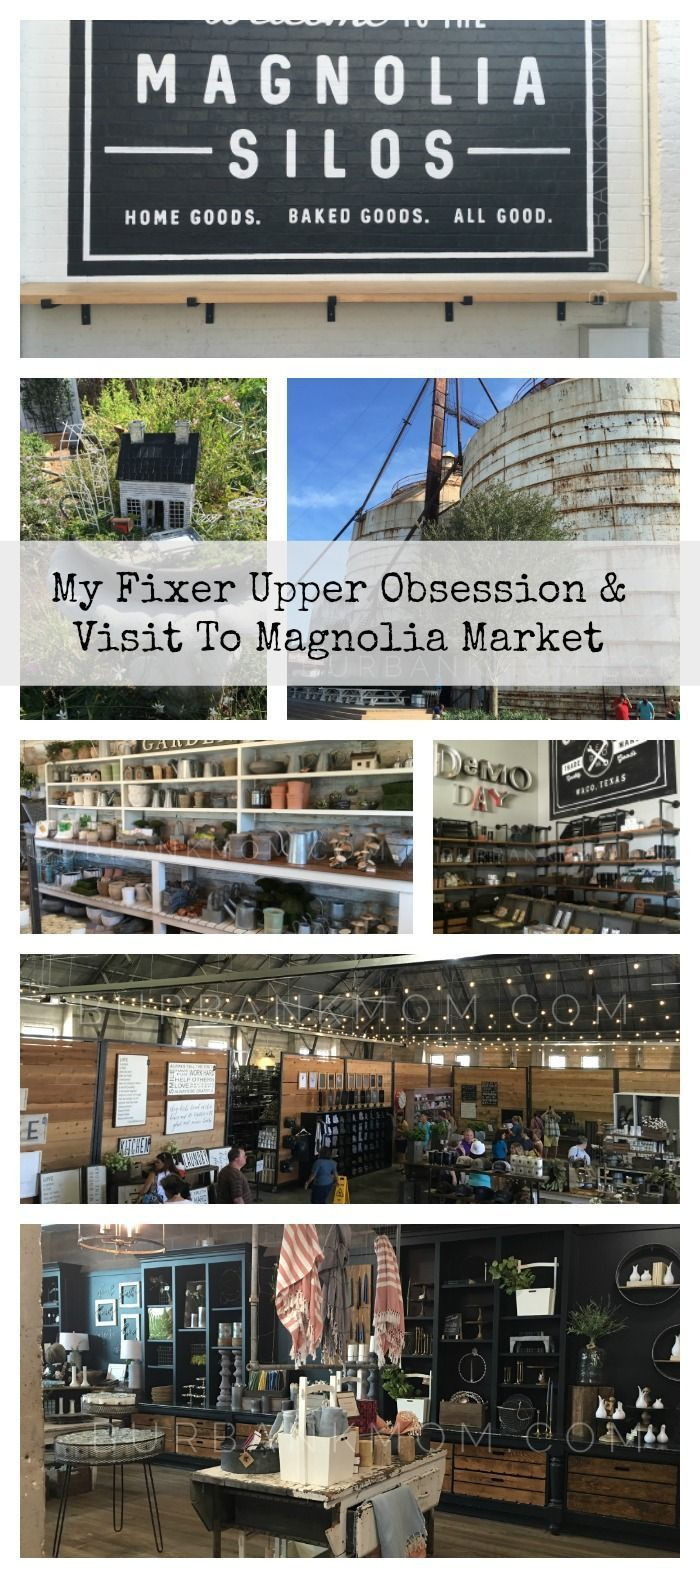 Joanna-Thropologie And My Fixer Upper Obsession